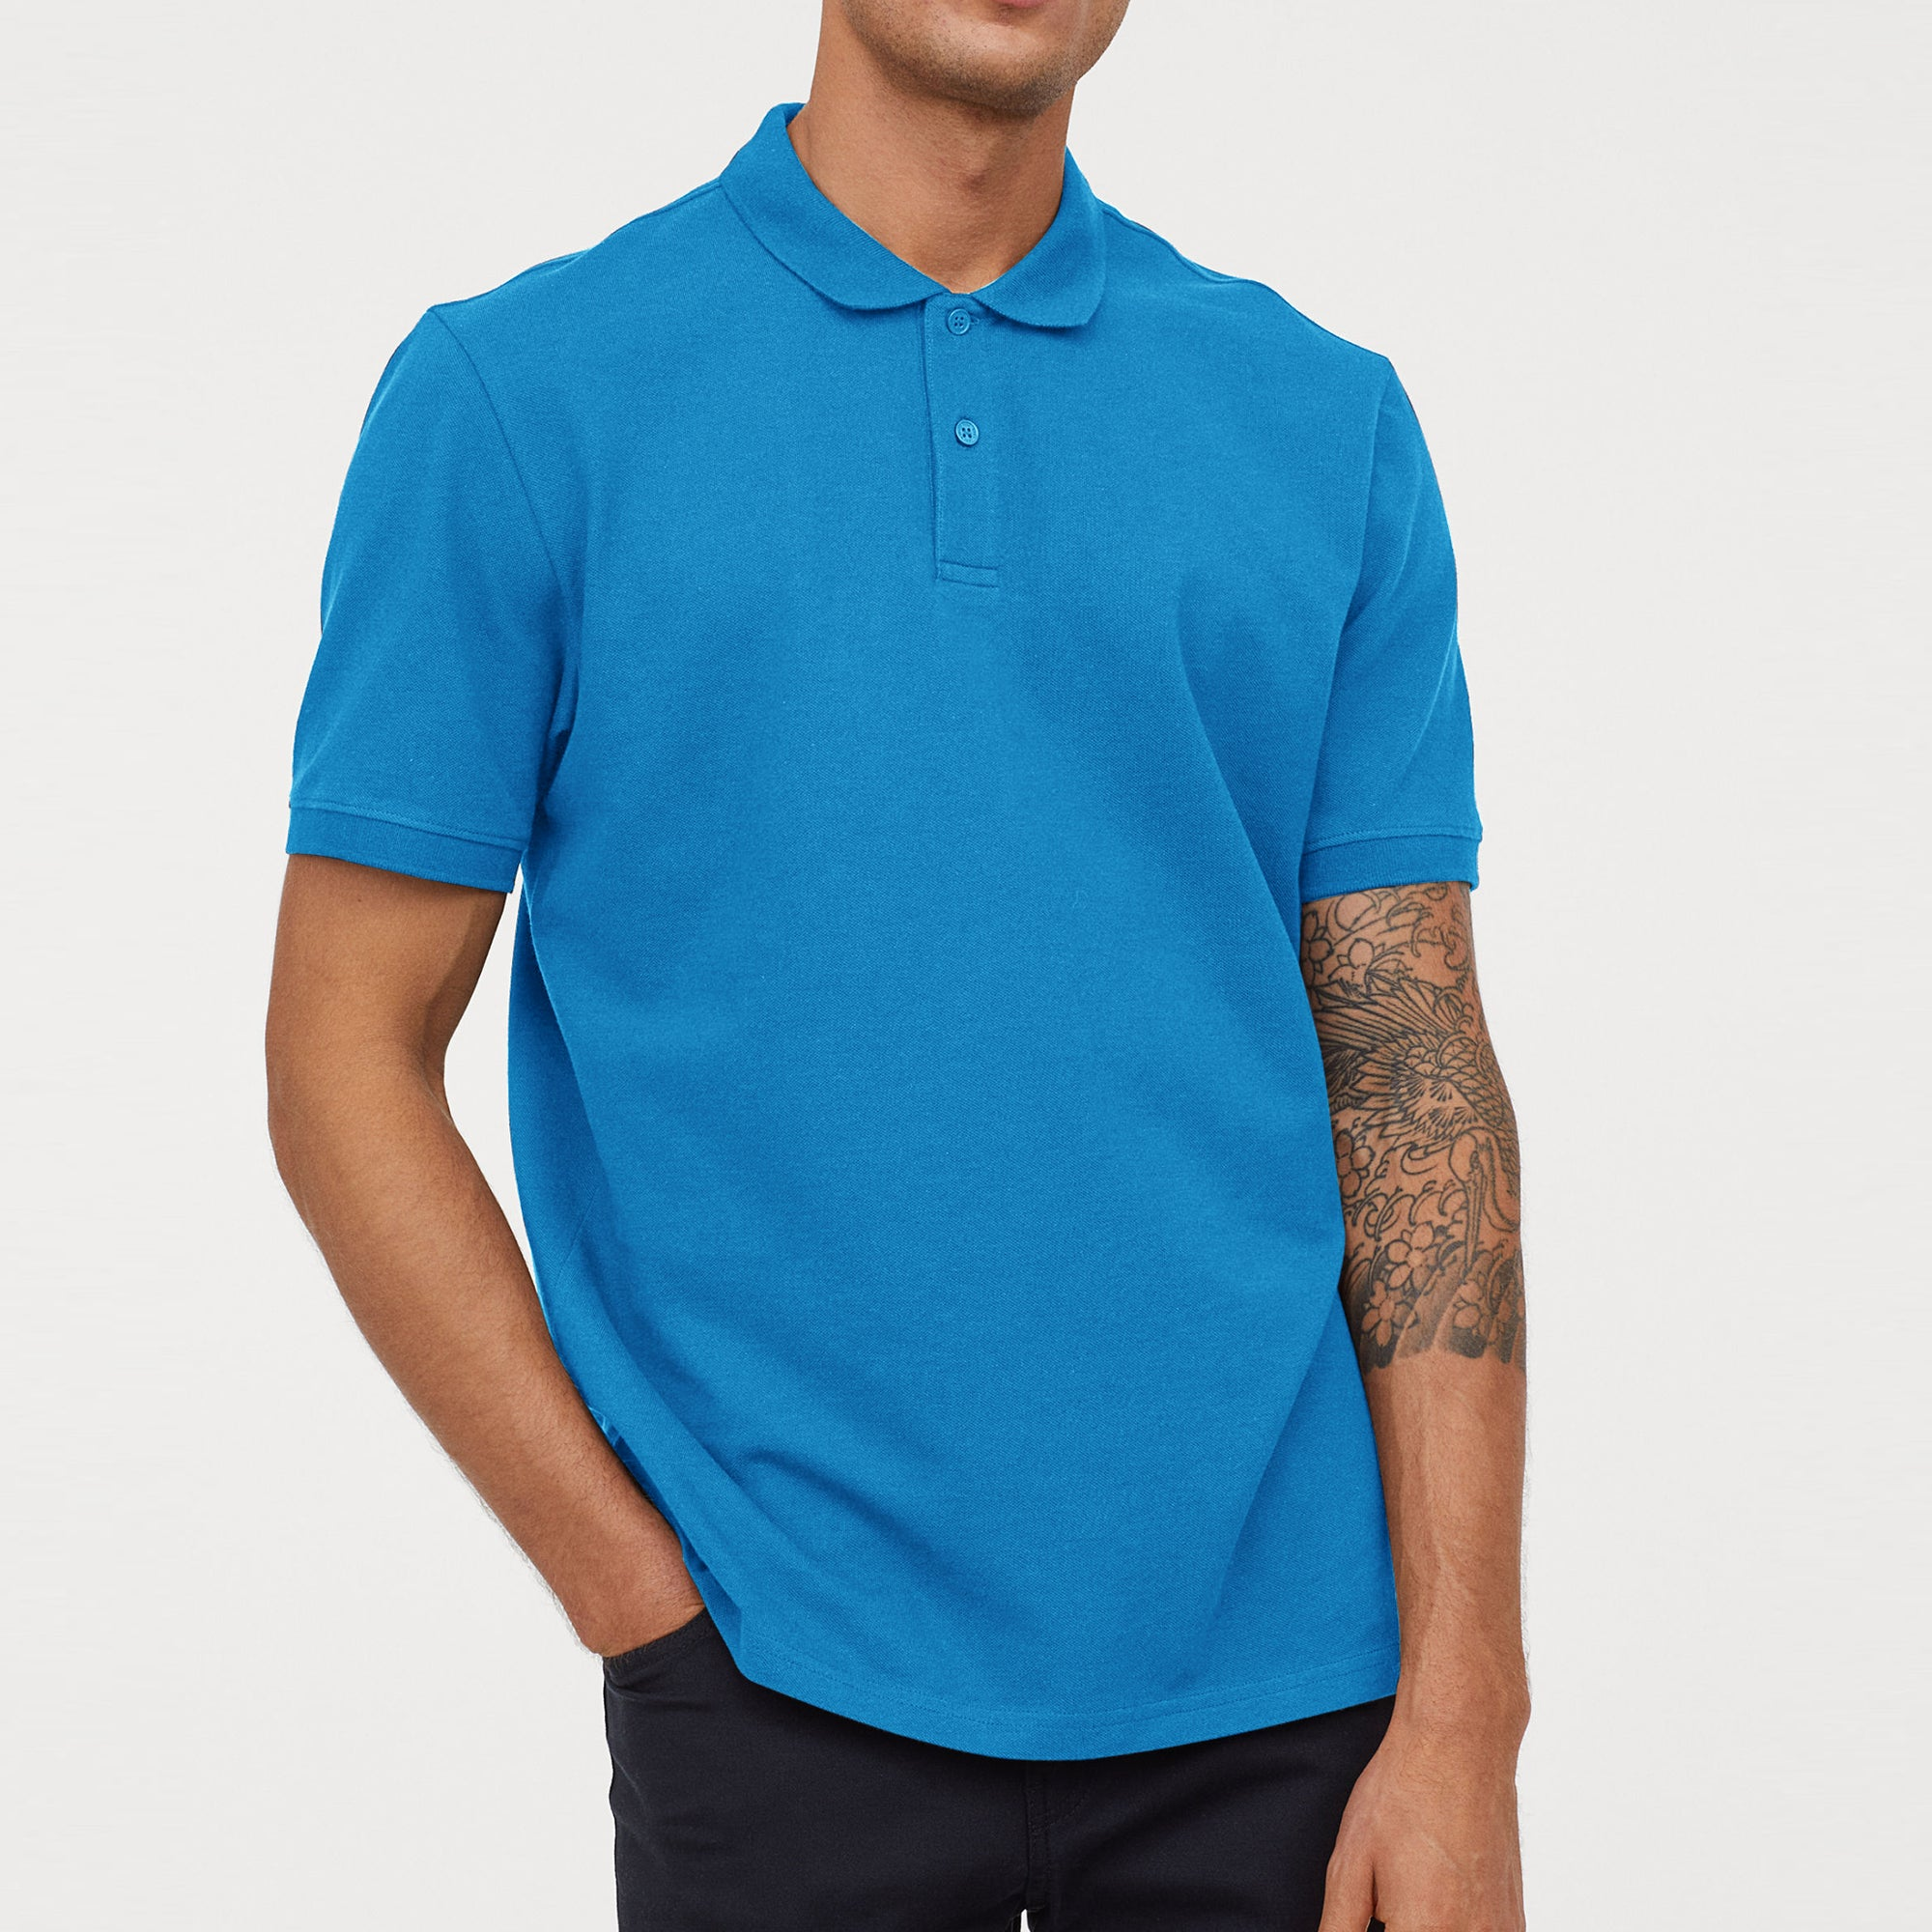 Henbury Short Sleeve Single Jersey Polo Shirt For Men-Sky Blue-SP287